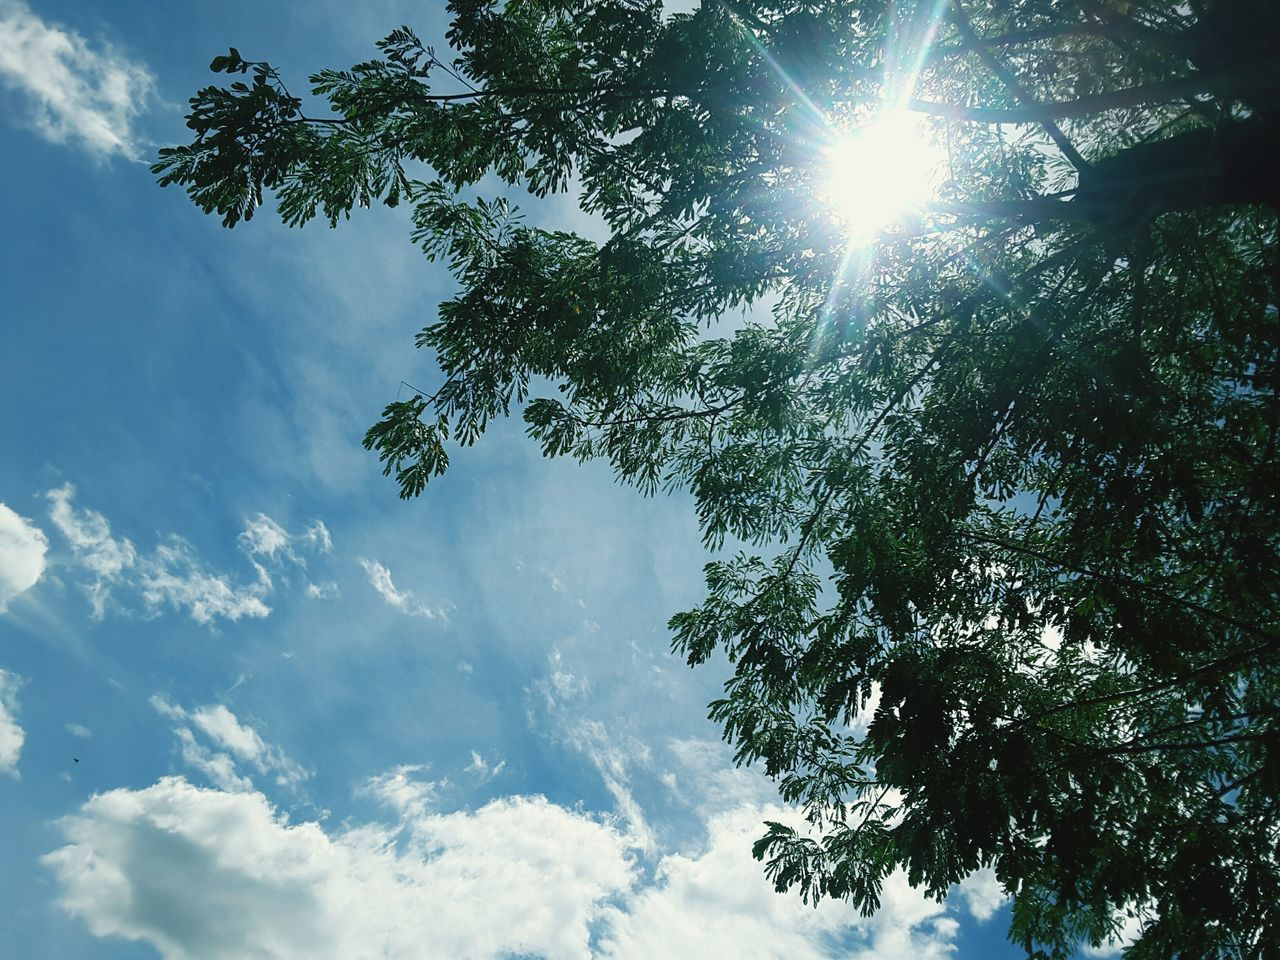 low angle view, tree, nature, sky, sunbeam, beauty in nature, sun, sunlight, no people, scenics, tranquility, day, cloud - sky, outdoors, tranquil scene, growth, branch, hope